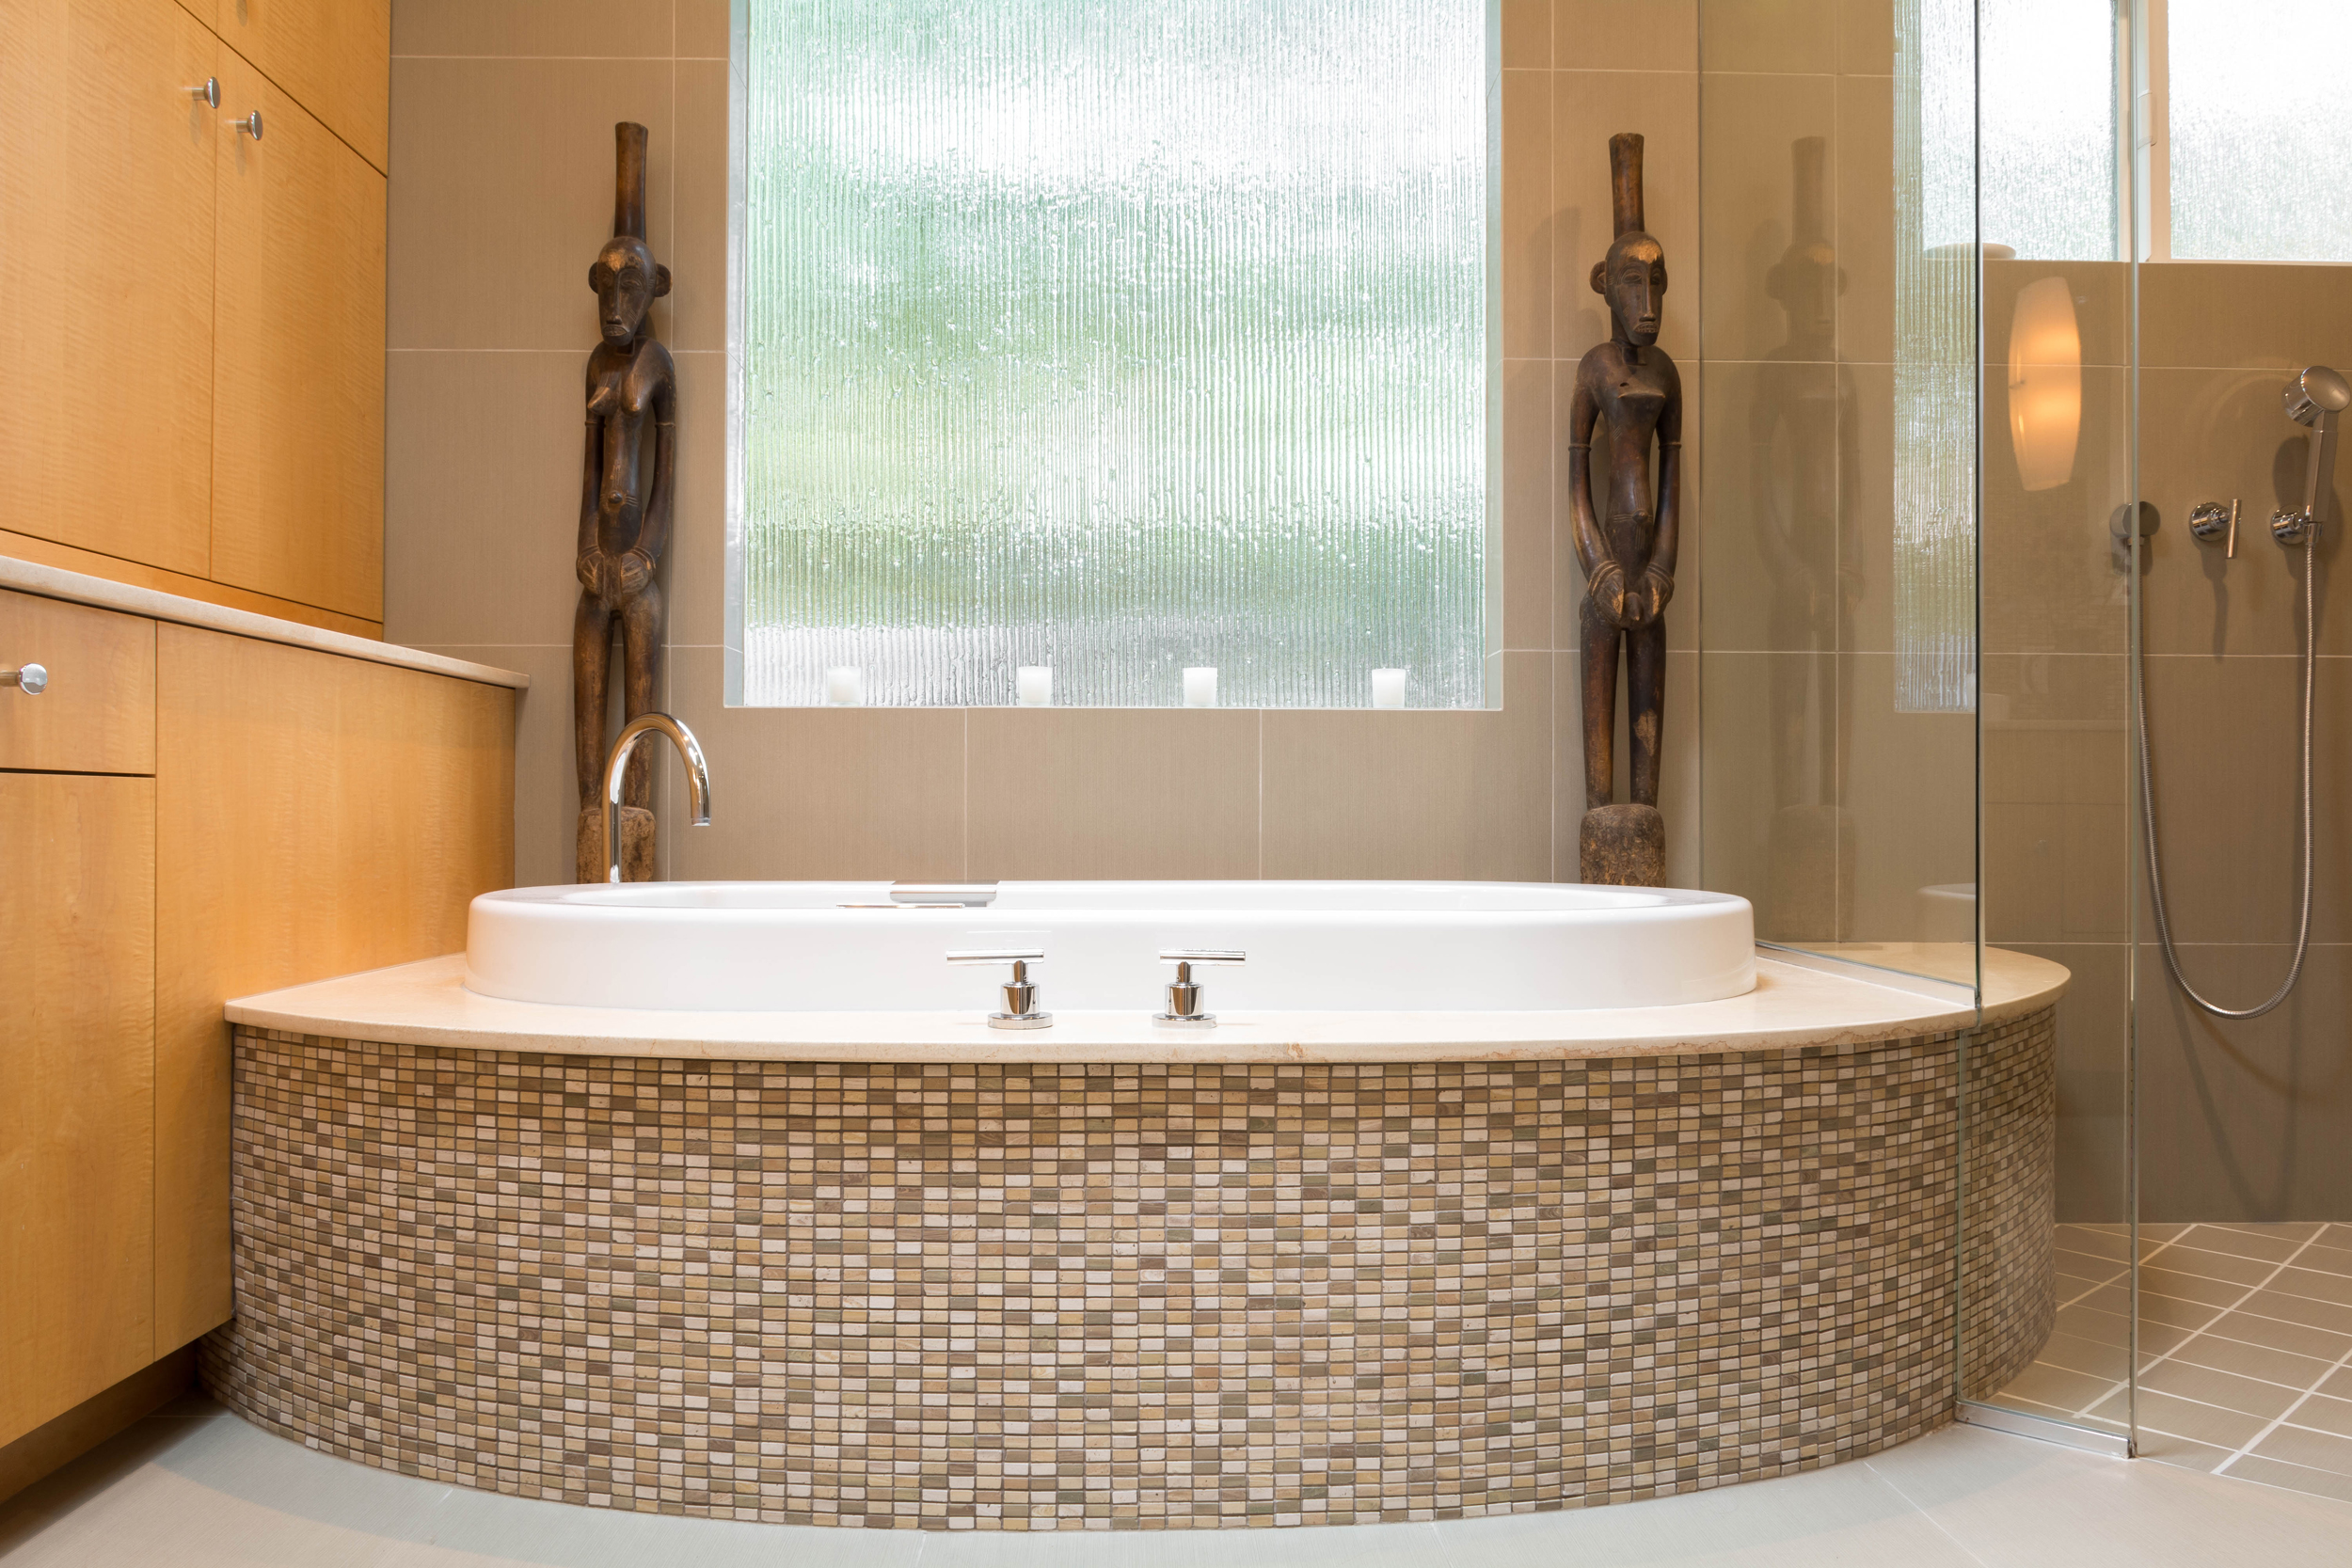 The spa like tub with rain glass behind is the focal point of this master bathroom